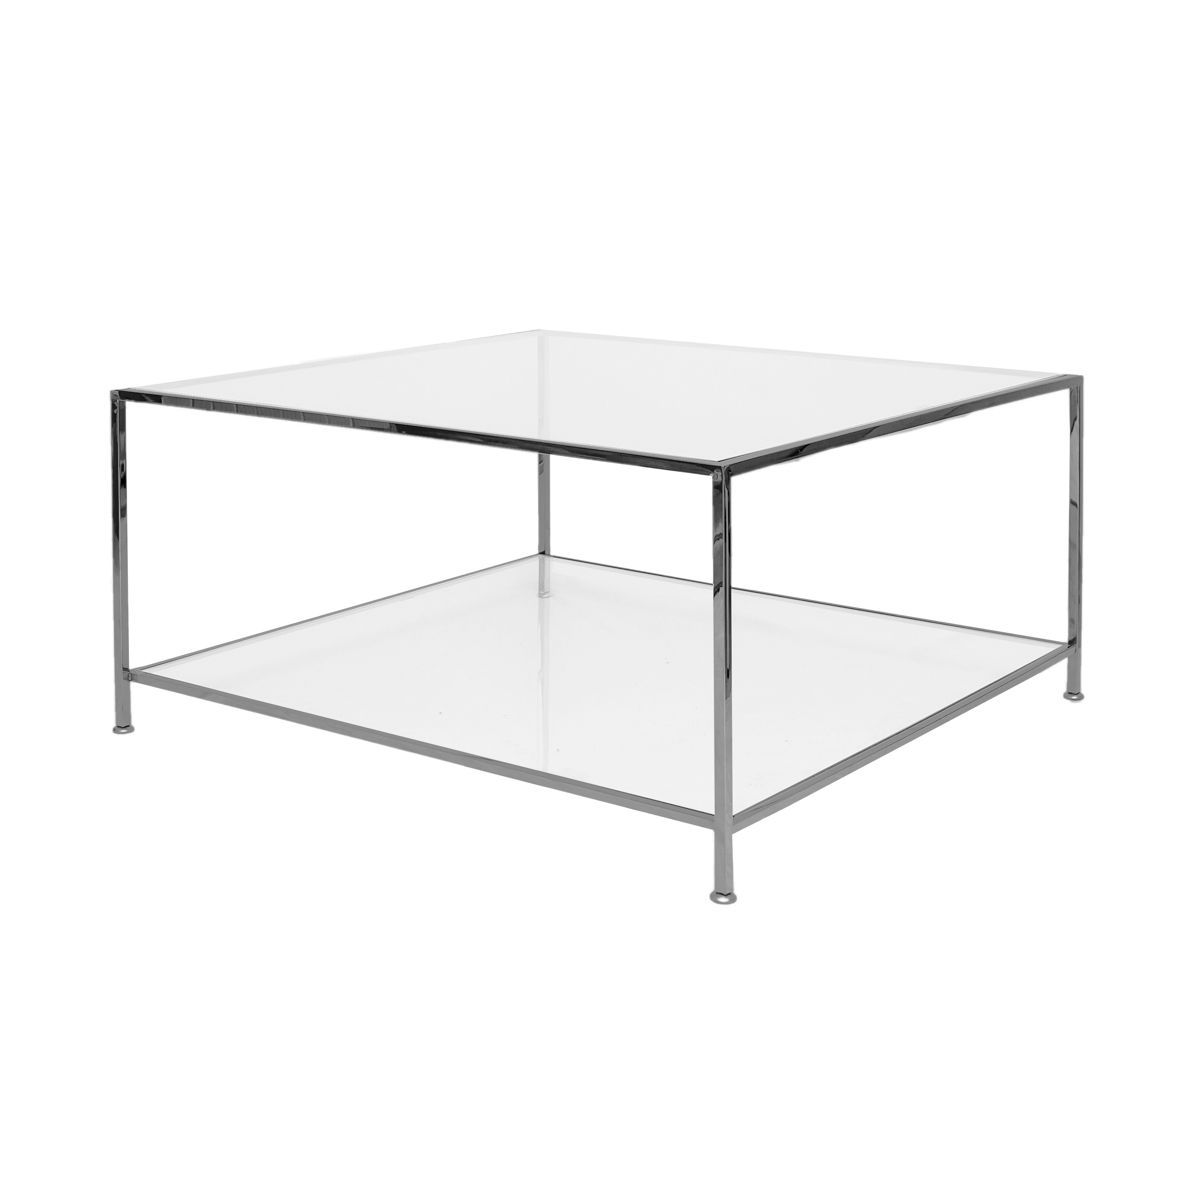 Big Square Table – Black Chrome